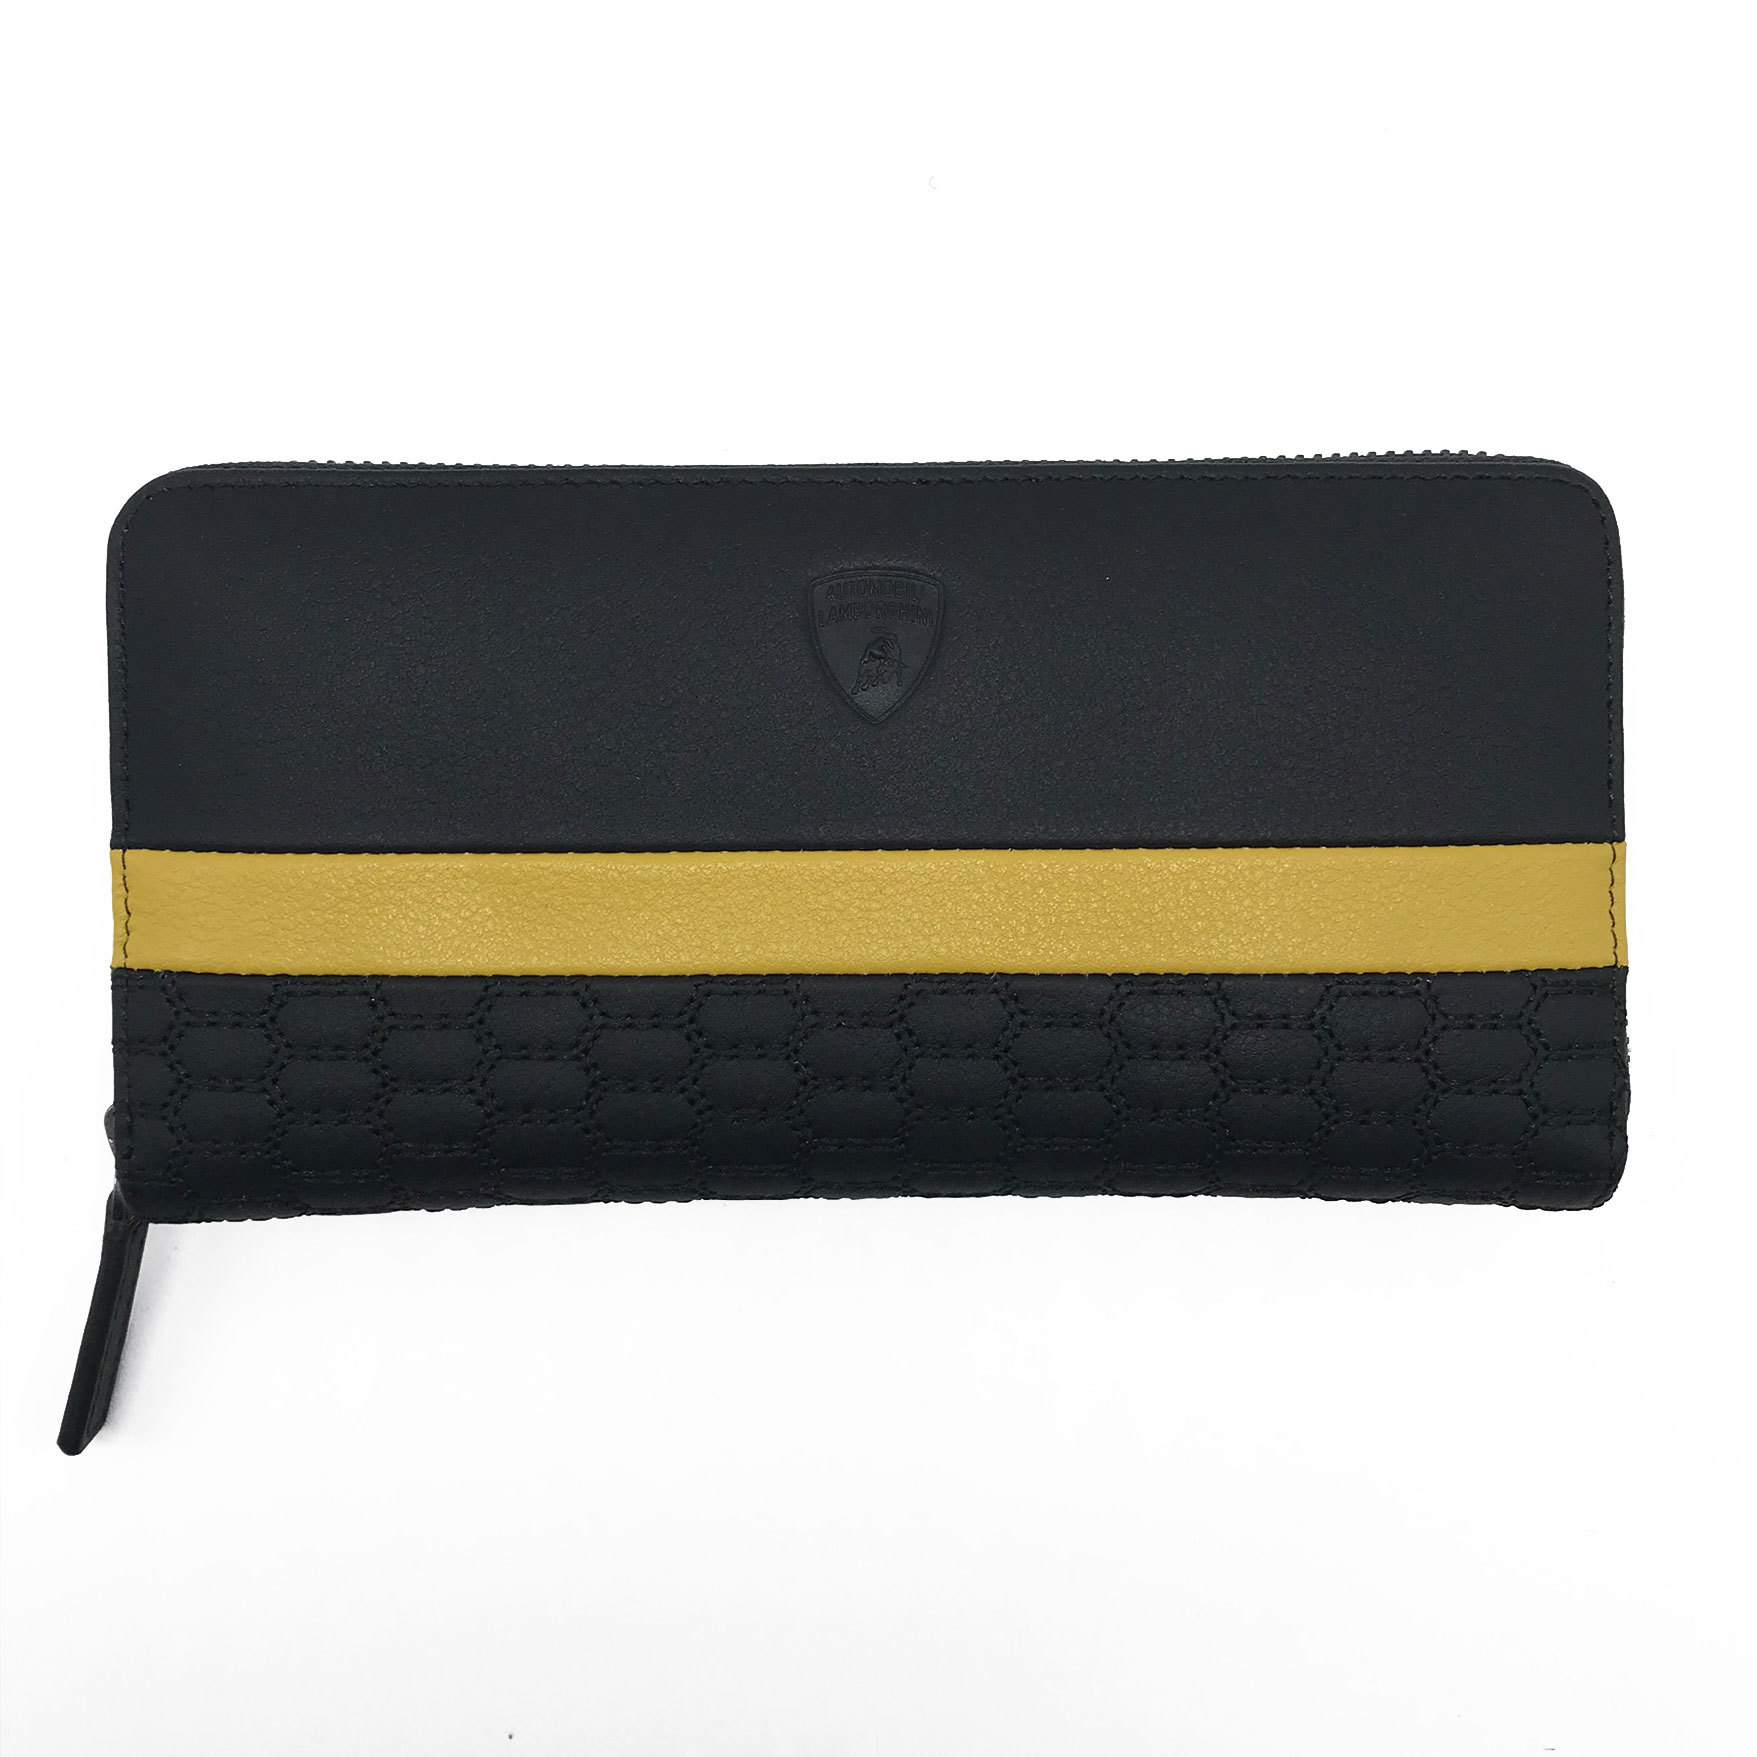 Кошелек Lamborghini Dynamic, black